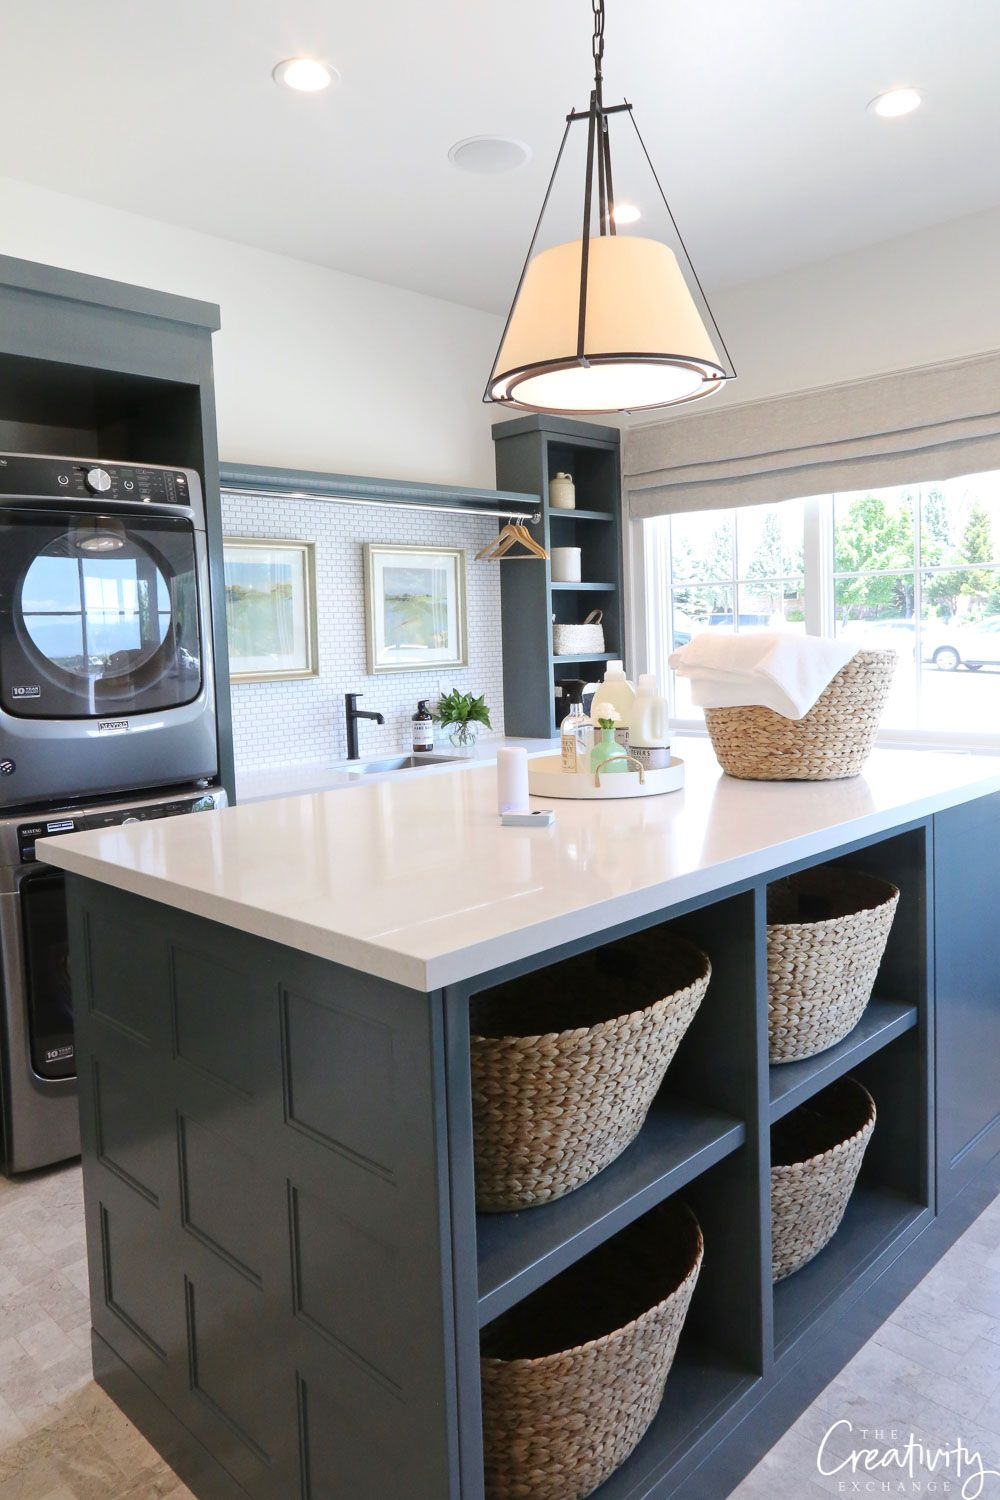 Benjamin Moore Knoxville Gray: Color Spotlight images